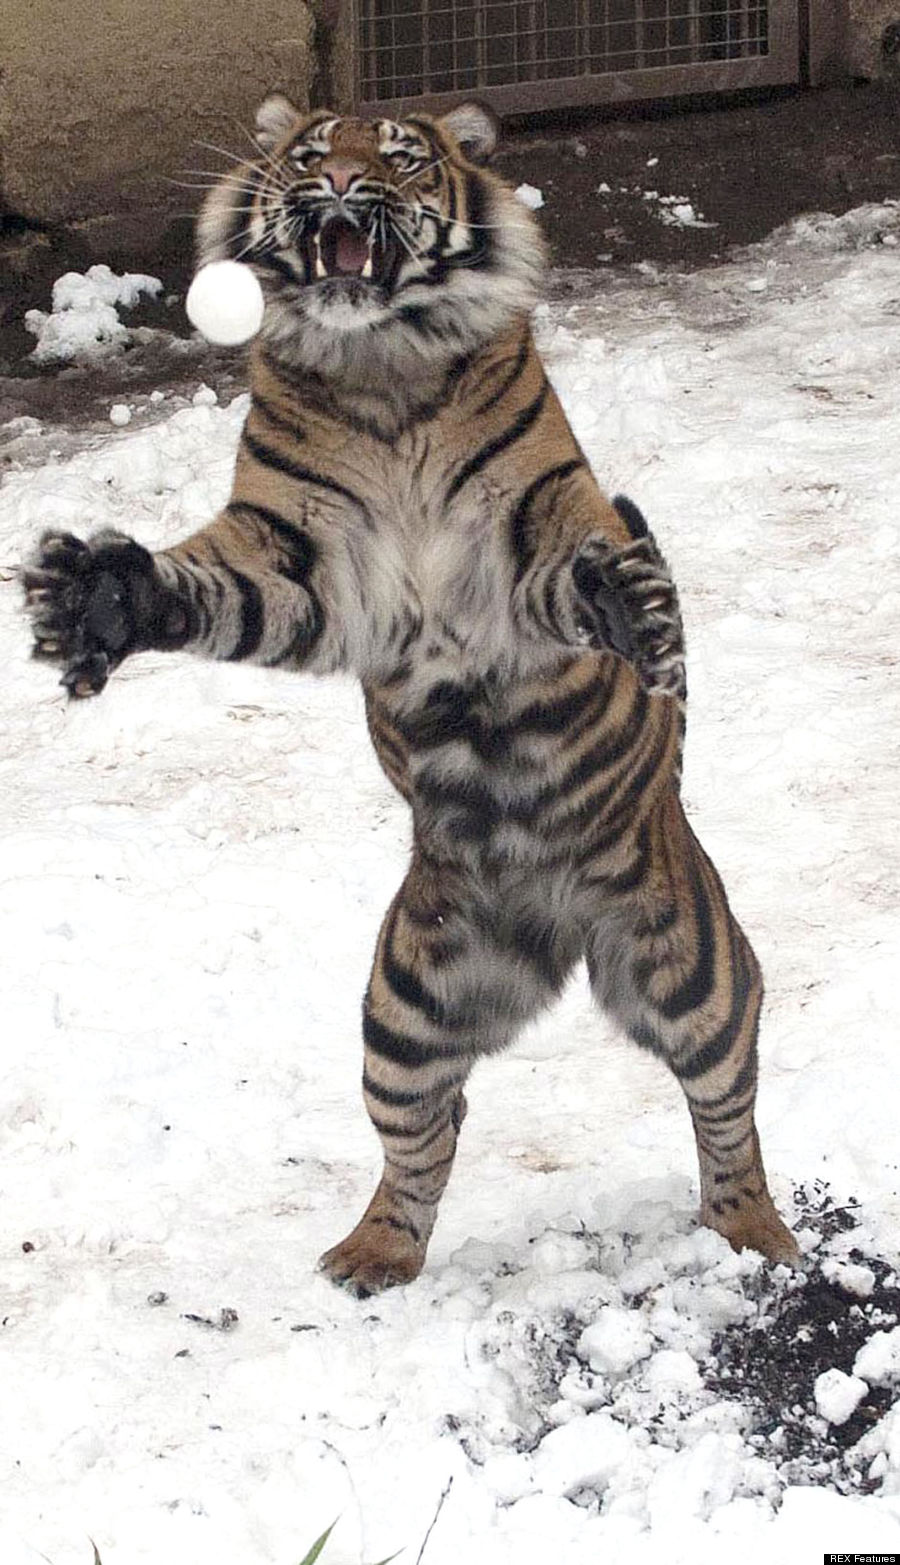 Sumatran tiger at Dudley Zoological Gardens catching a snowball, Dudley, West Midlands, Britain - 22 Jan 2013